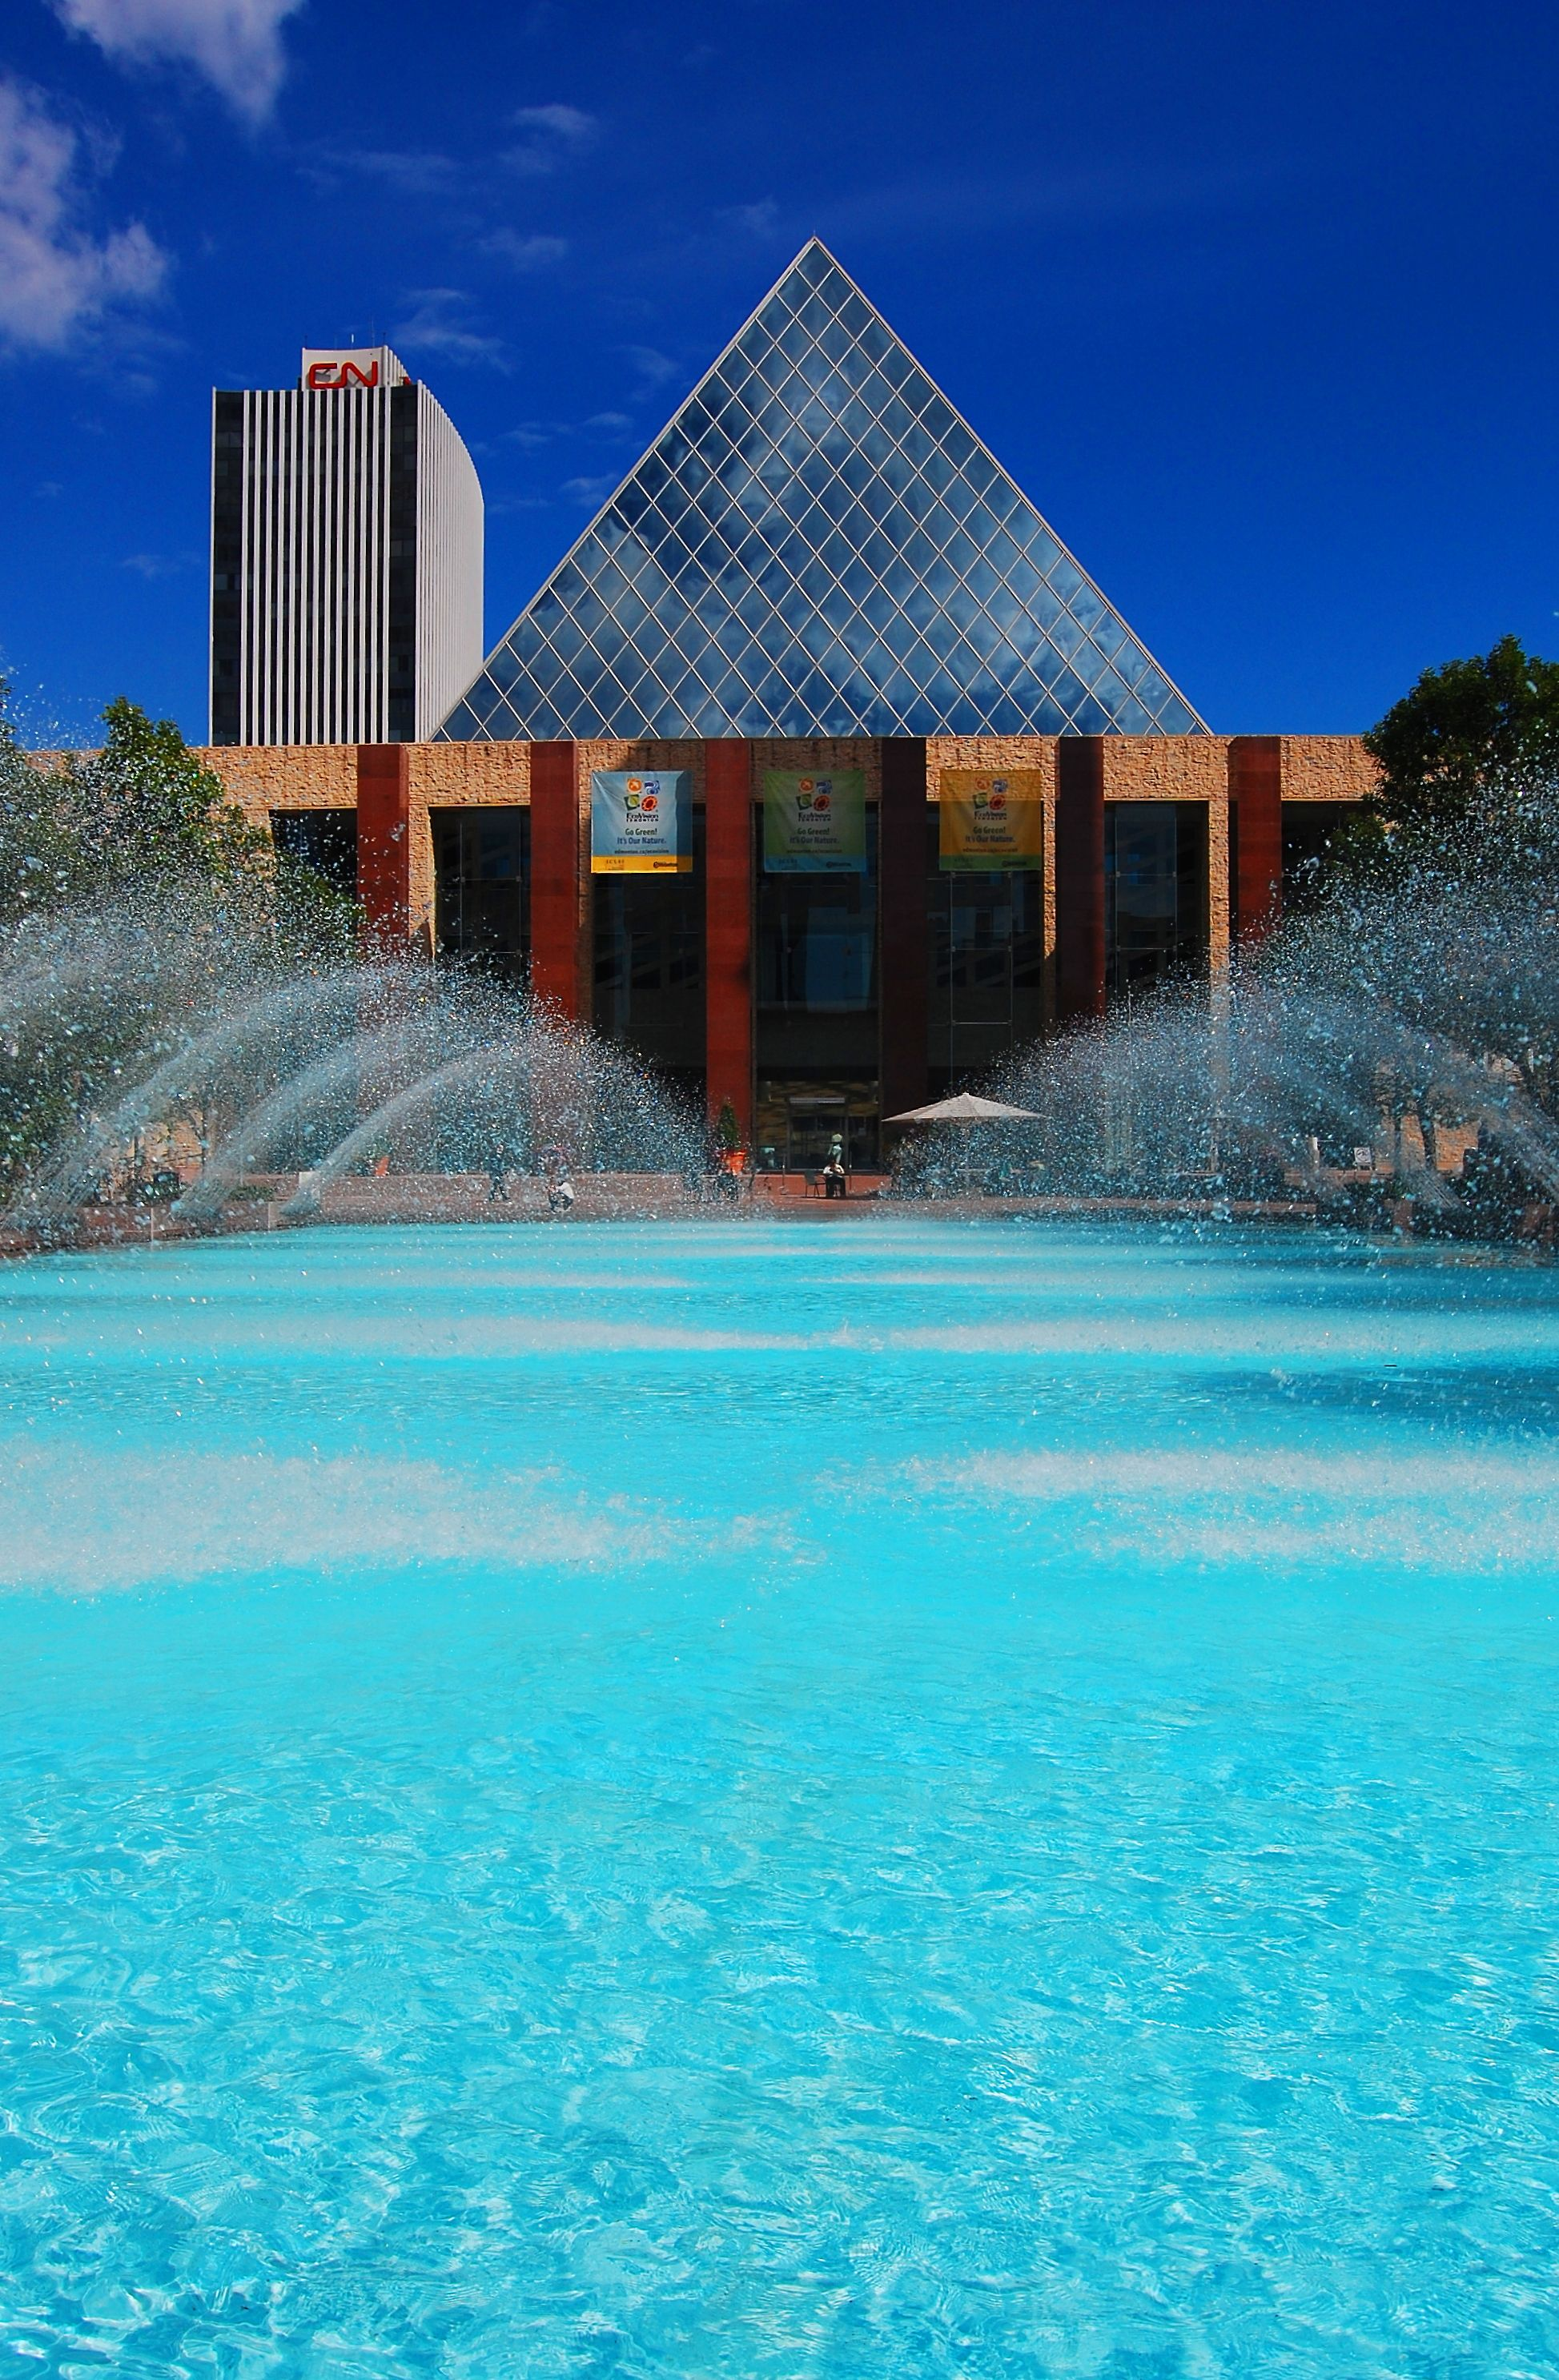 Edmonton: City Hall Fountains, Downtown Edmonton, Canada